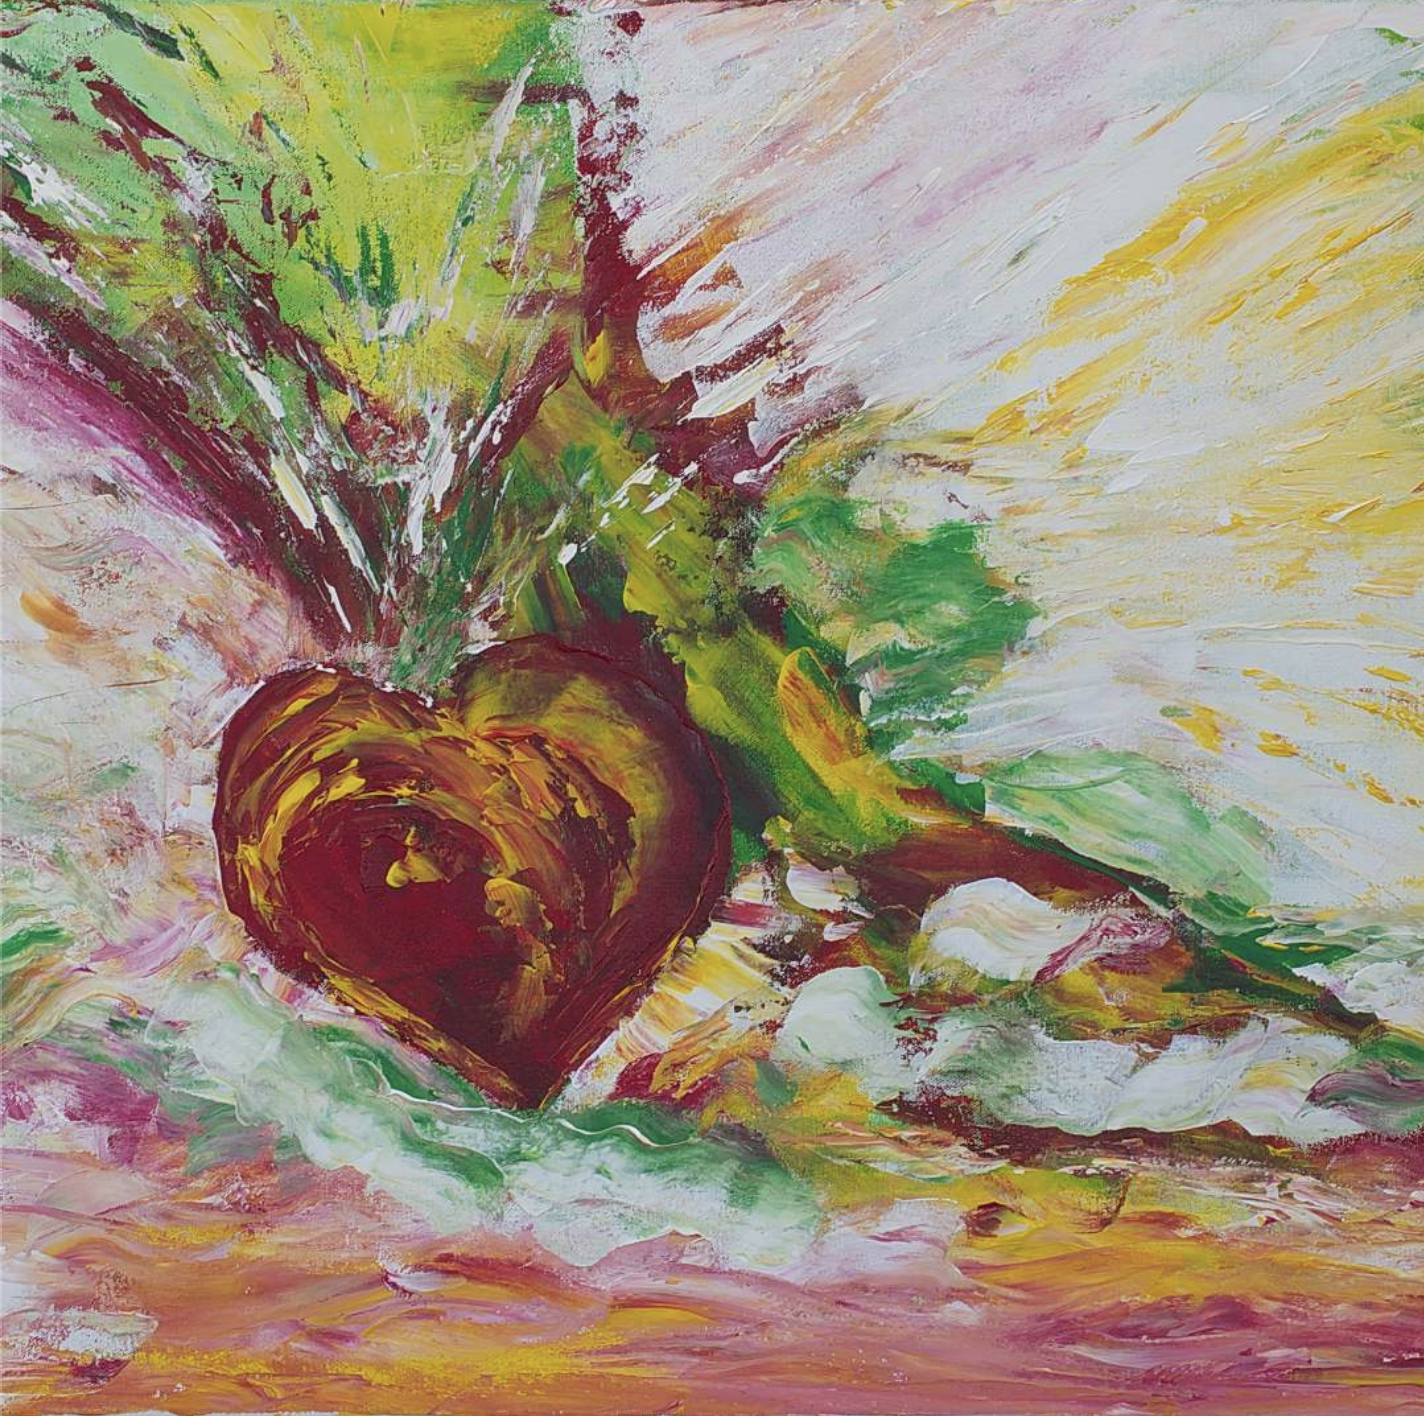 An colourful painting of a heart